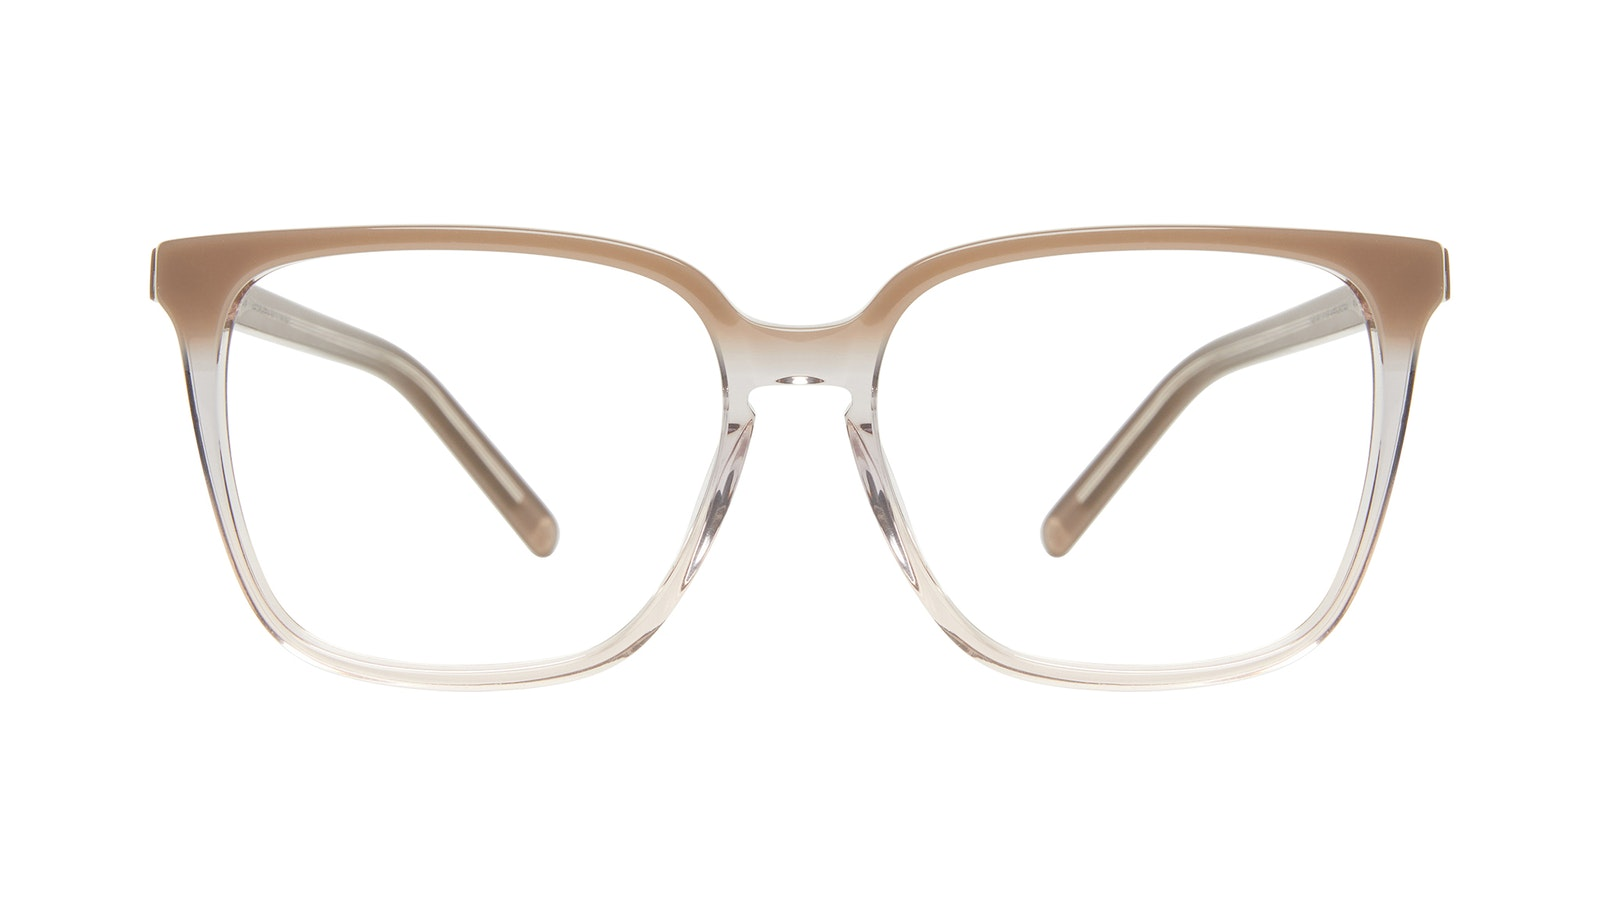 Affordable Fashion Glasses Square Eyeglasses Women Runway Smokey Ombré